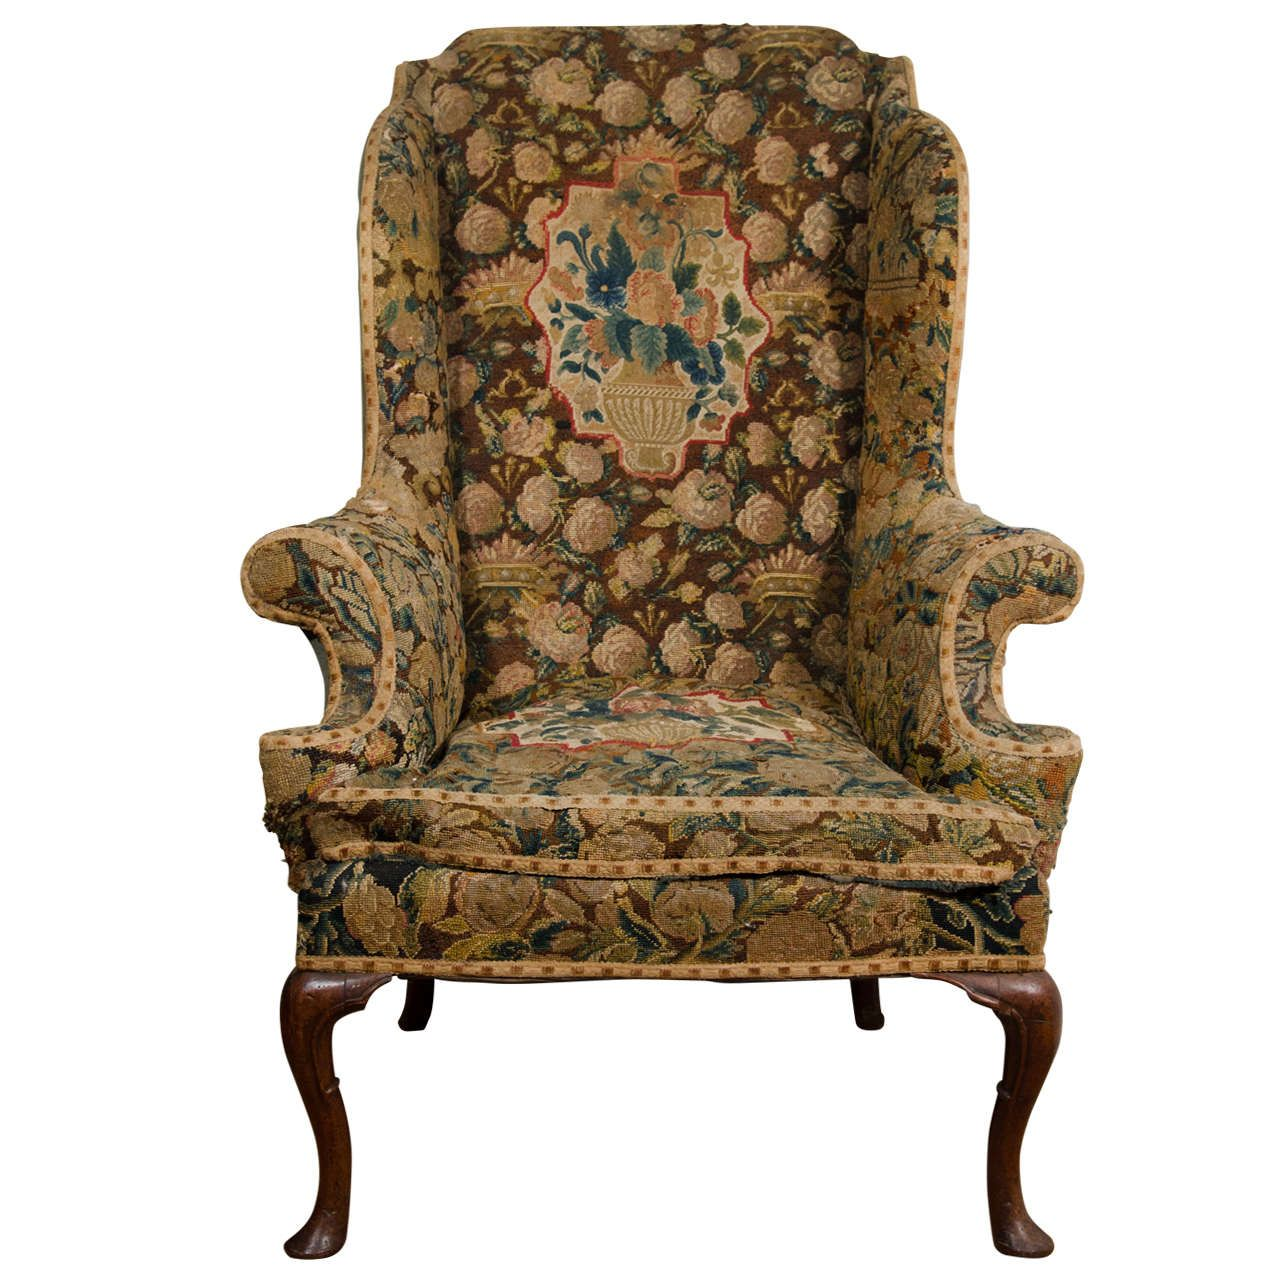 Antiques · English Queen Anne Walnut Wing Chair ... - English Queen Anne Walnut Wing Chair Queen Anne, English And Chairs